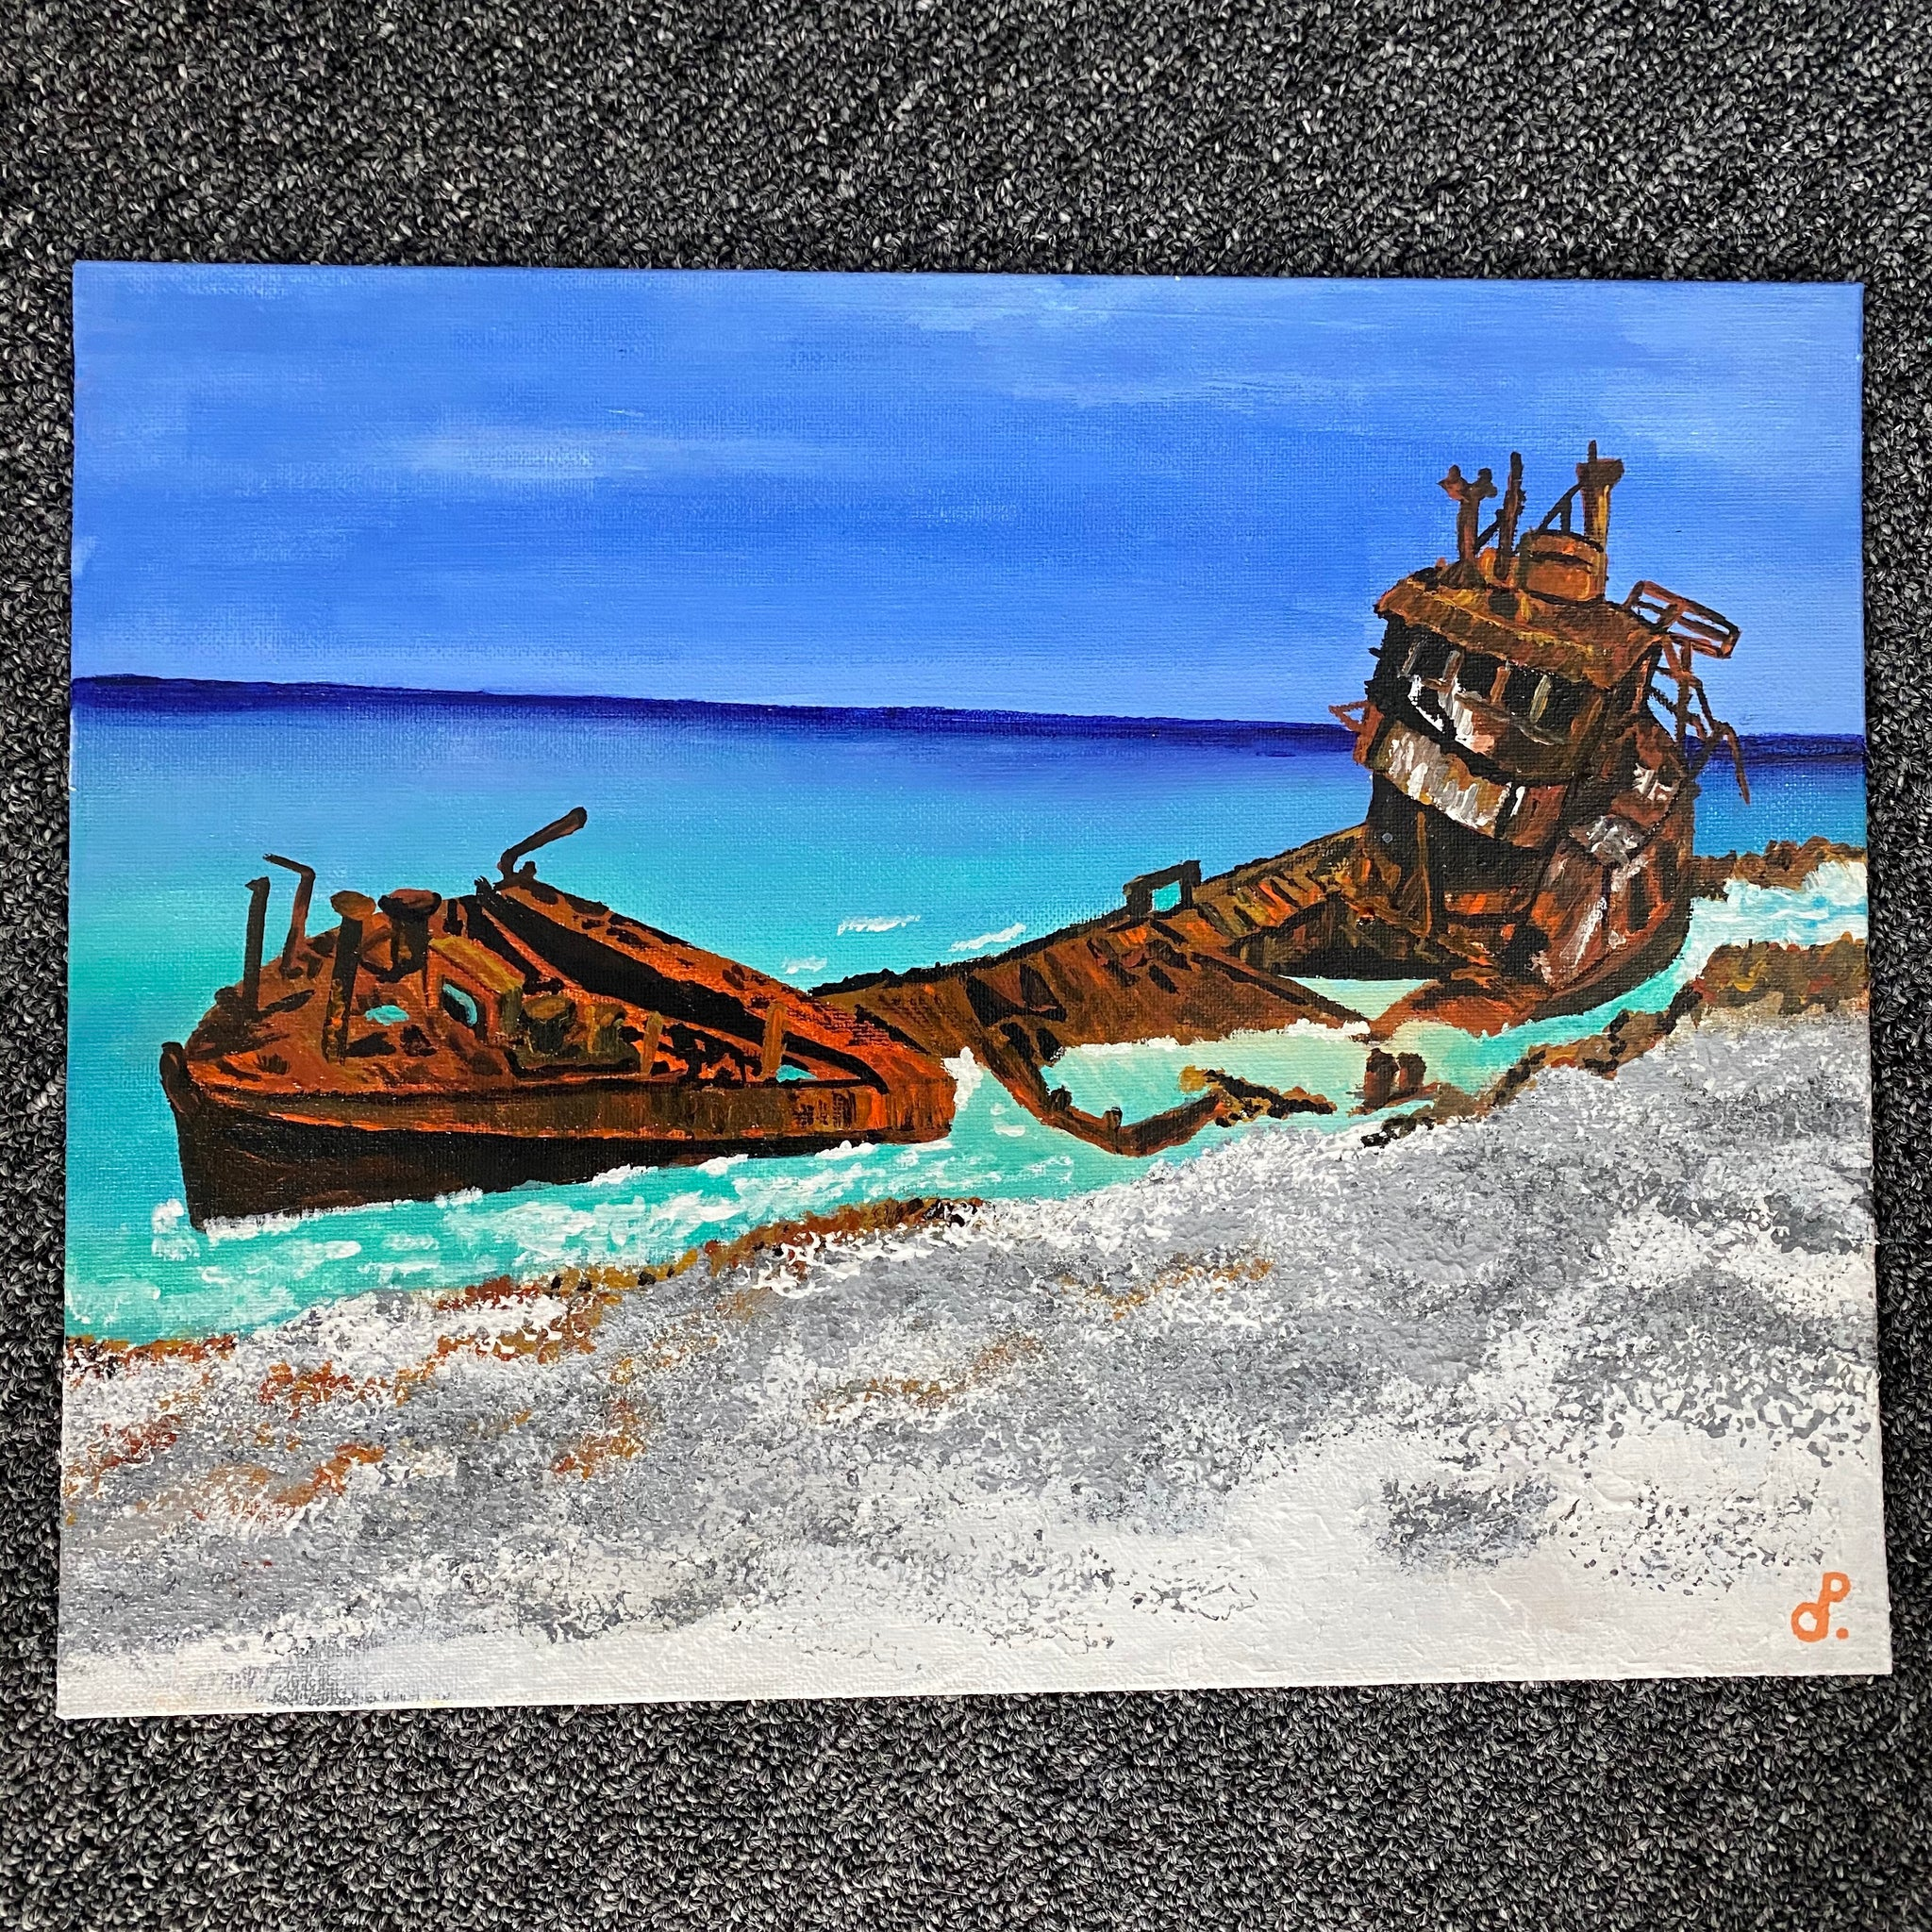 BIMINI'S WRECK PAINTING by D pontvieux